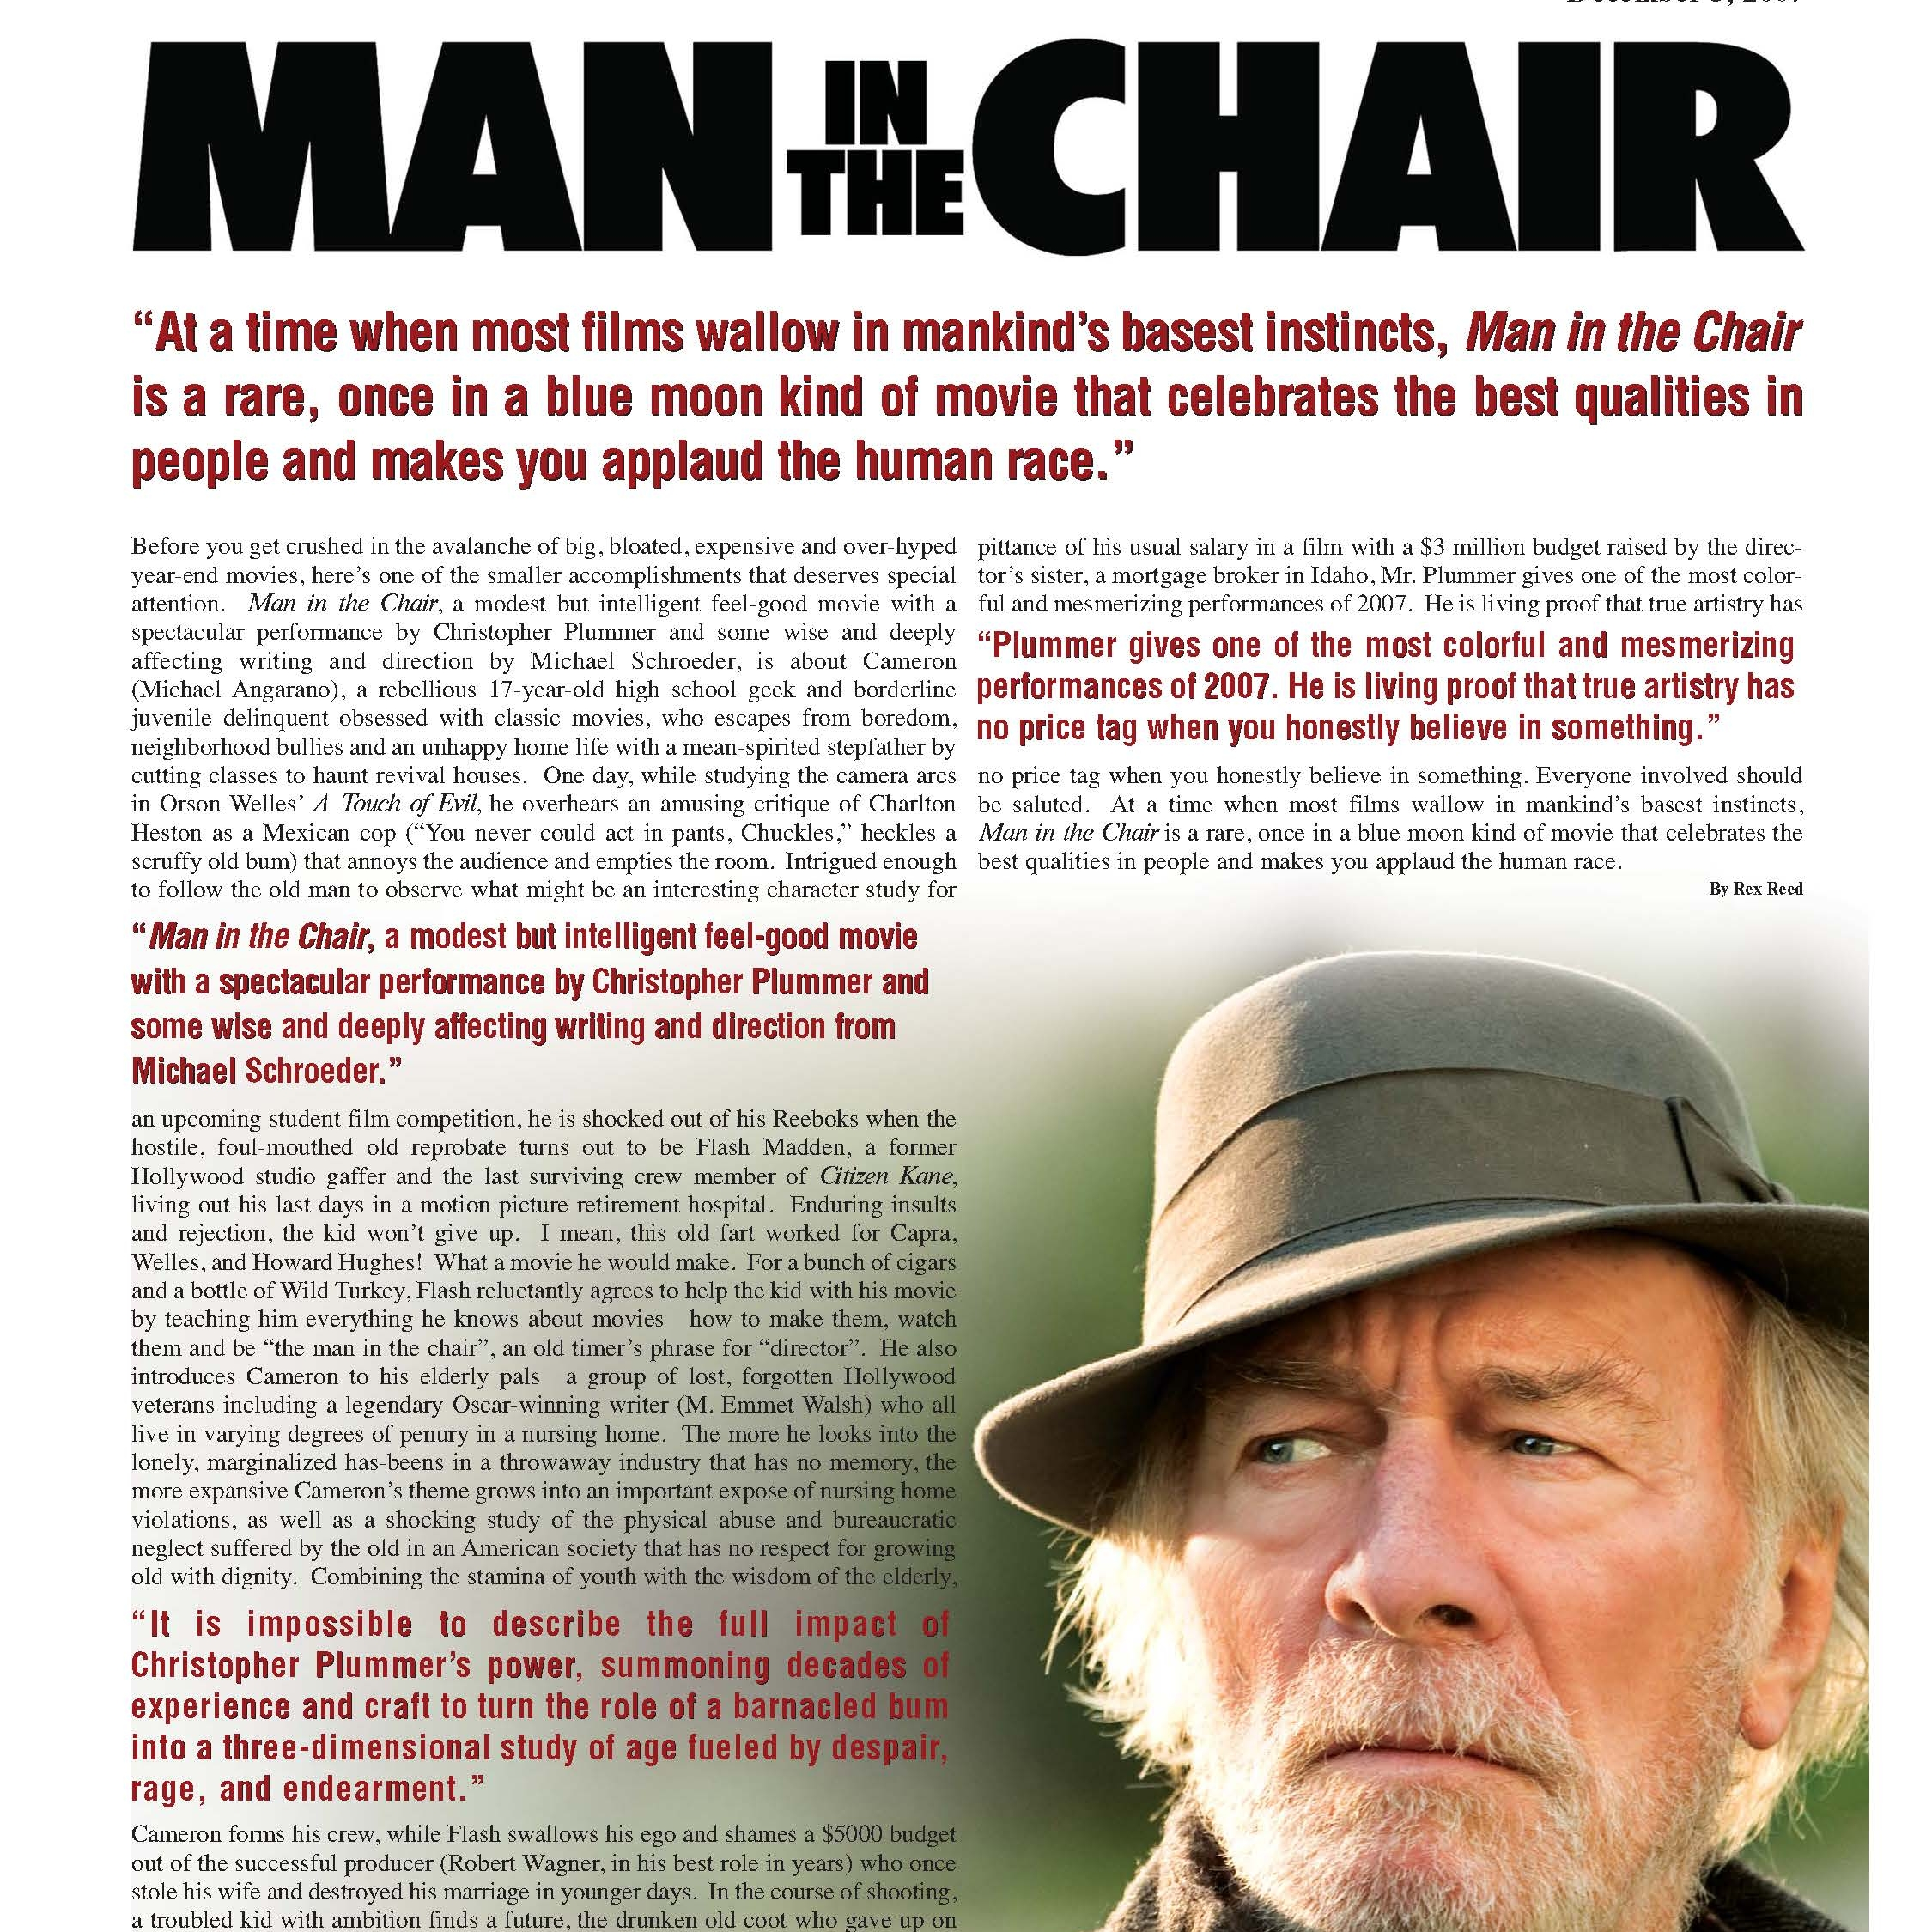 """New York Observer  """"Man in the Chair, a modest but intelligent feel-good movie with a spectacular performance by Christopher Plummer and some wise and deeply affecting writing and direction from Michael Schroeder.""""  -Rex Reed"""